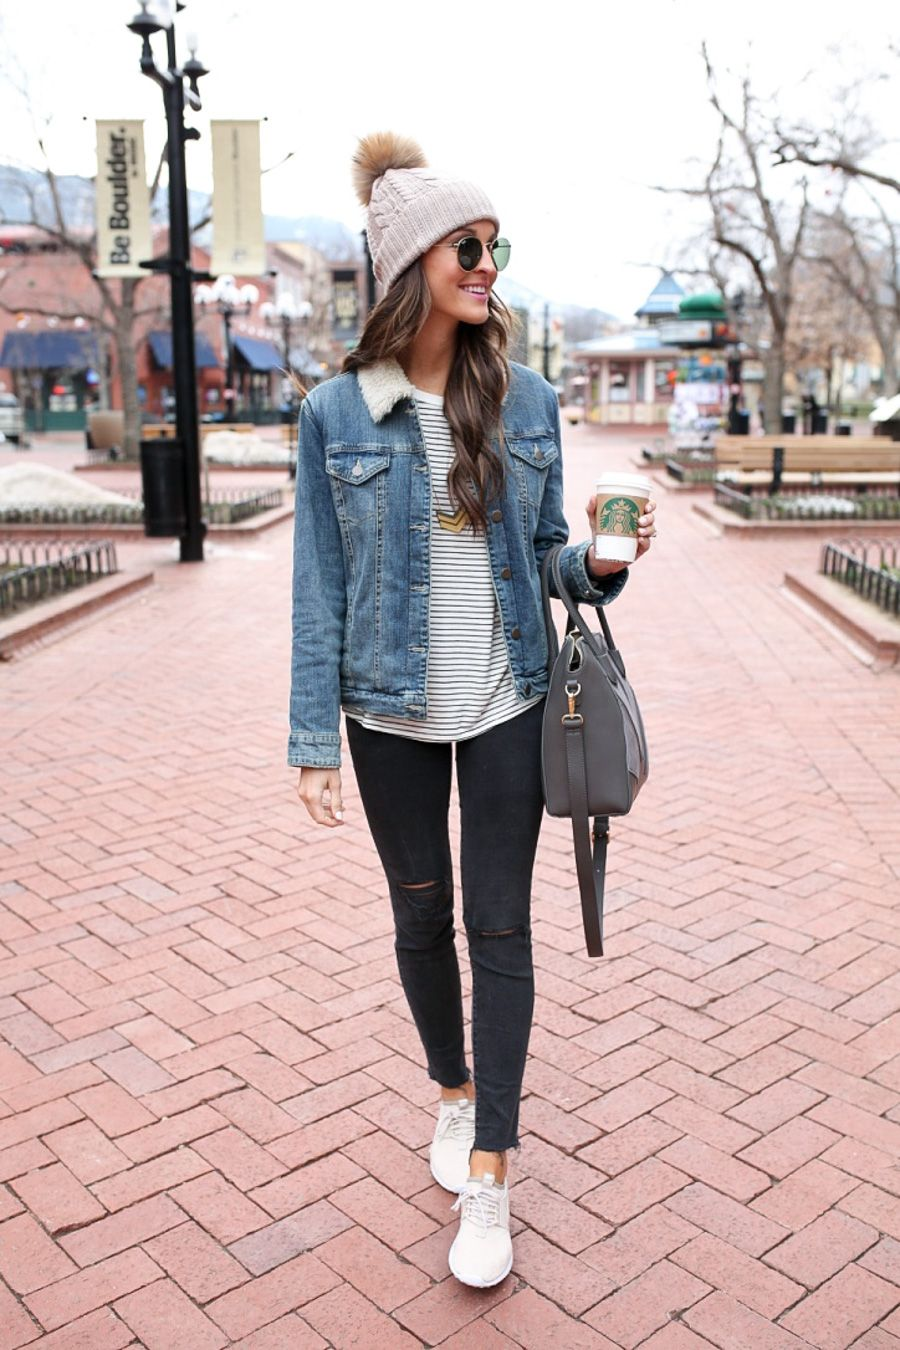 Sneaker girl all day everyday | laurenkaysims.com | Pinterest | Boulder colorado Winter fashion ...